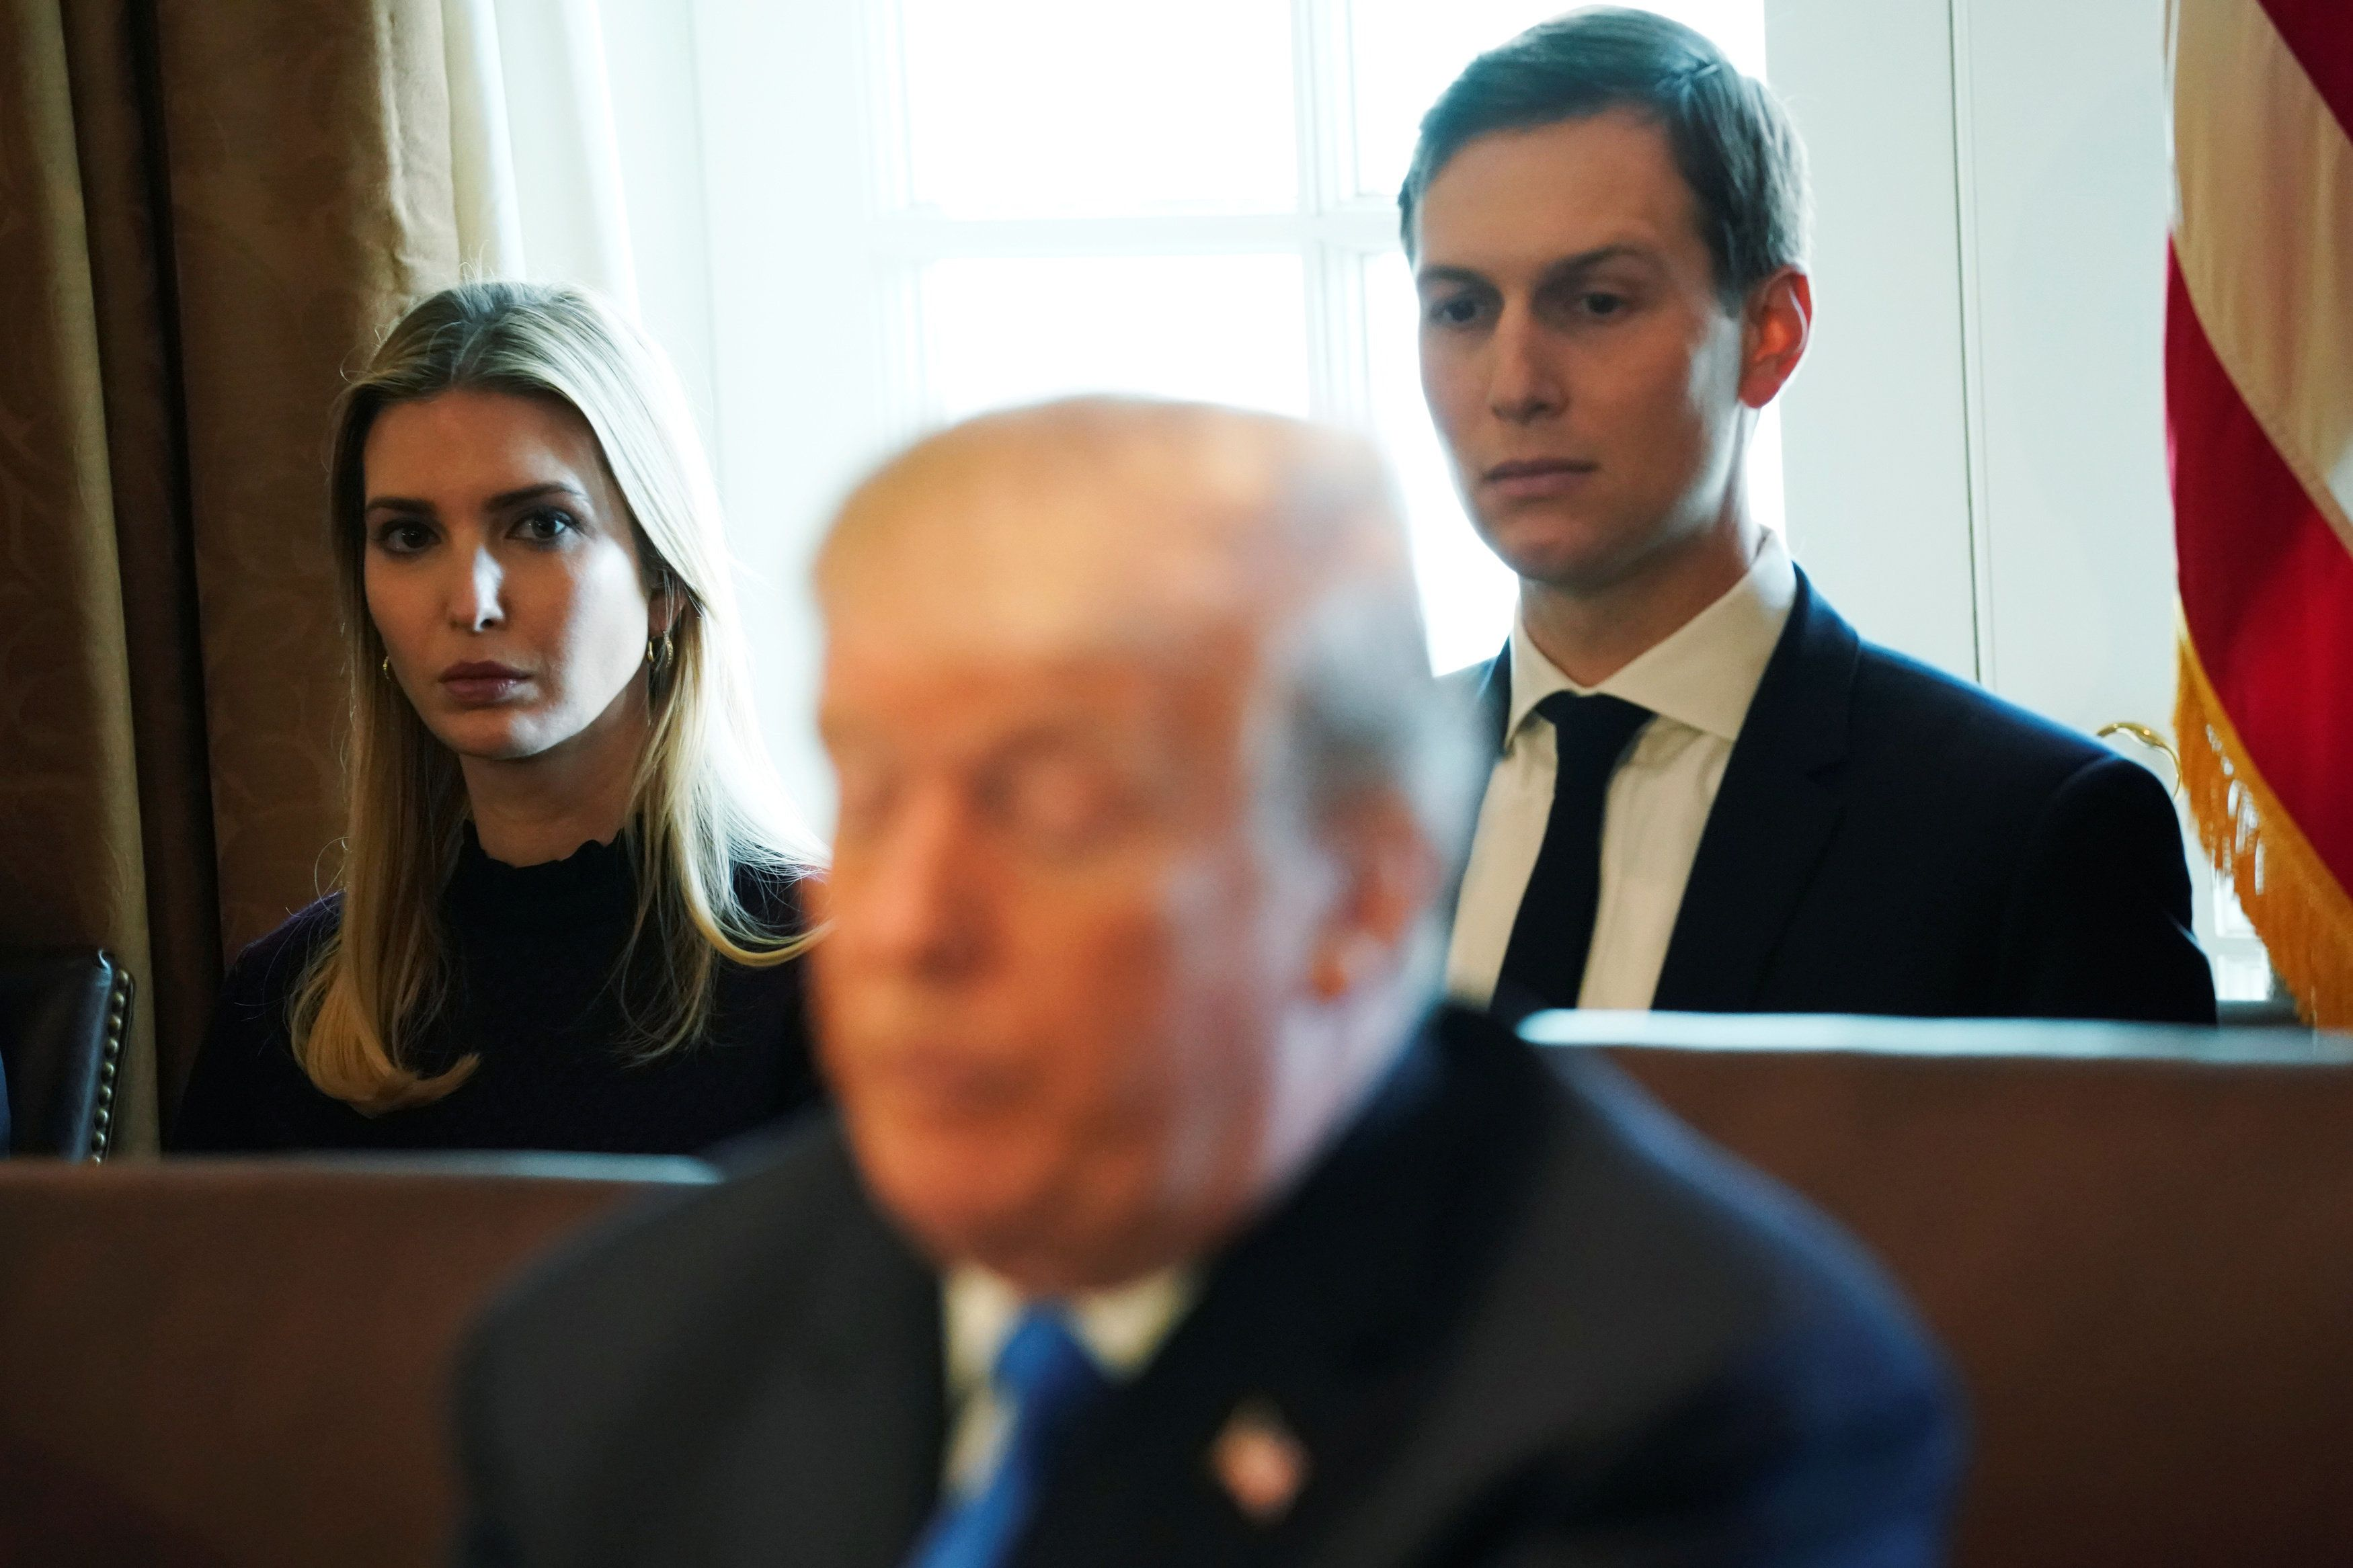 White House senior advisor Ivanka Trump and White House senior advisor Jared Kushner sit behind U.S. President Donald Trump as he talks to reporters before a cabinet meeting at the White House in Washington, U.S. December 6, 2017.  REUTERS/Jonathan Ernst